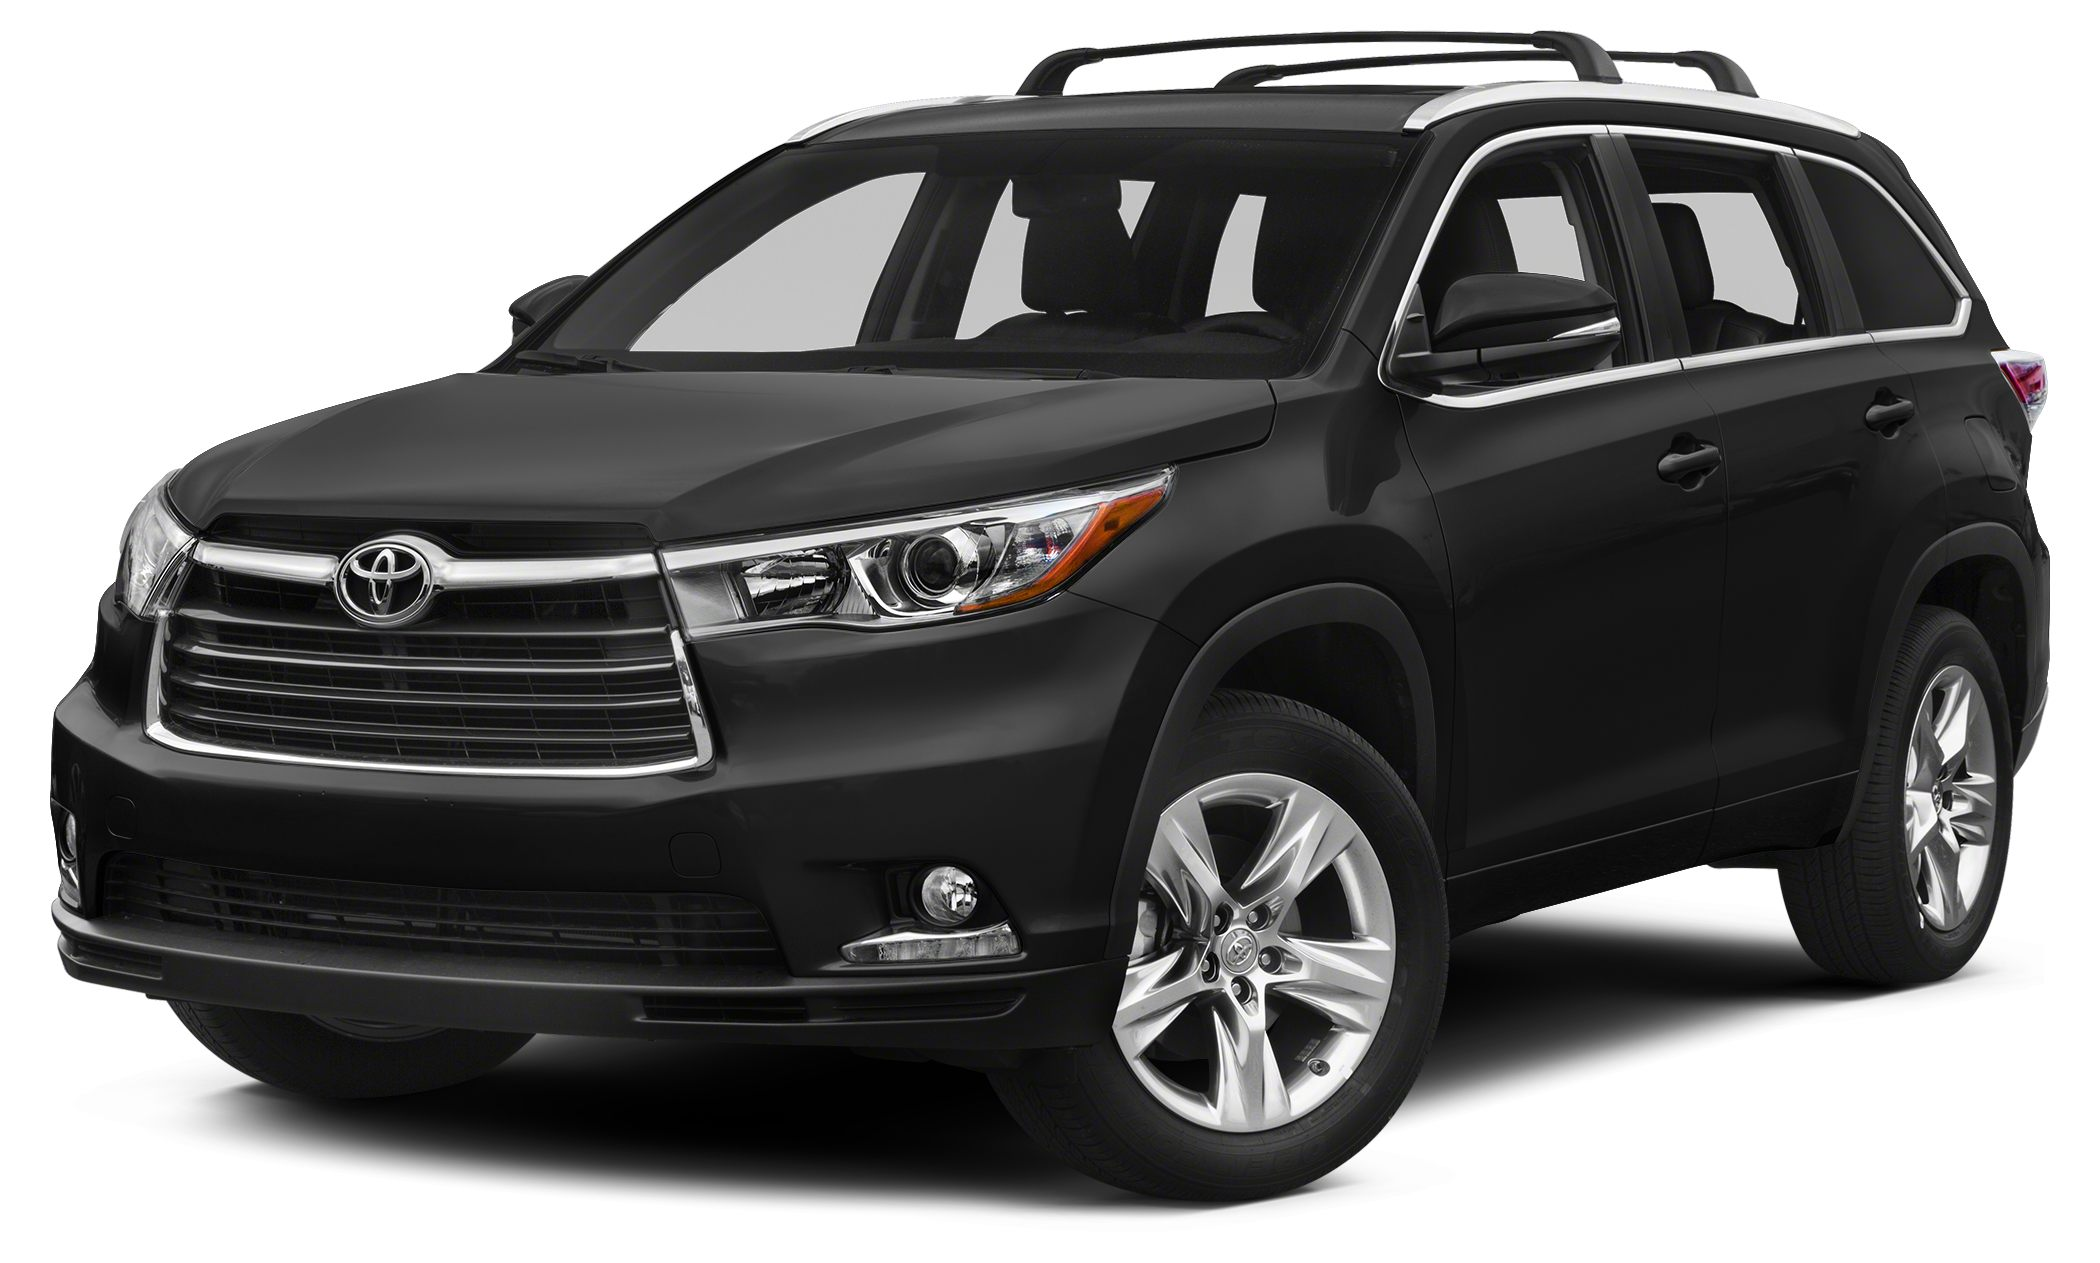 2014 Toyota Highlander XLE CARFAX 1-Owner LOW MILES - 25690 REDUCED FROM 31980 EPA 24 MPG H